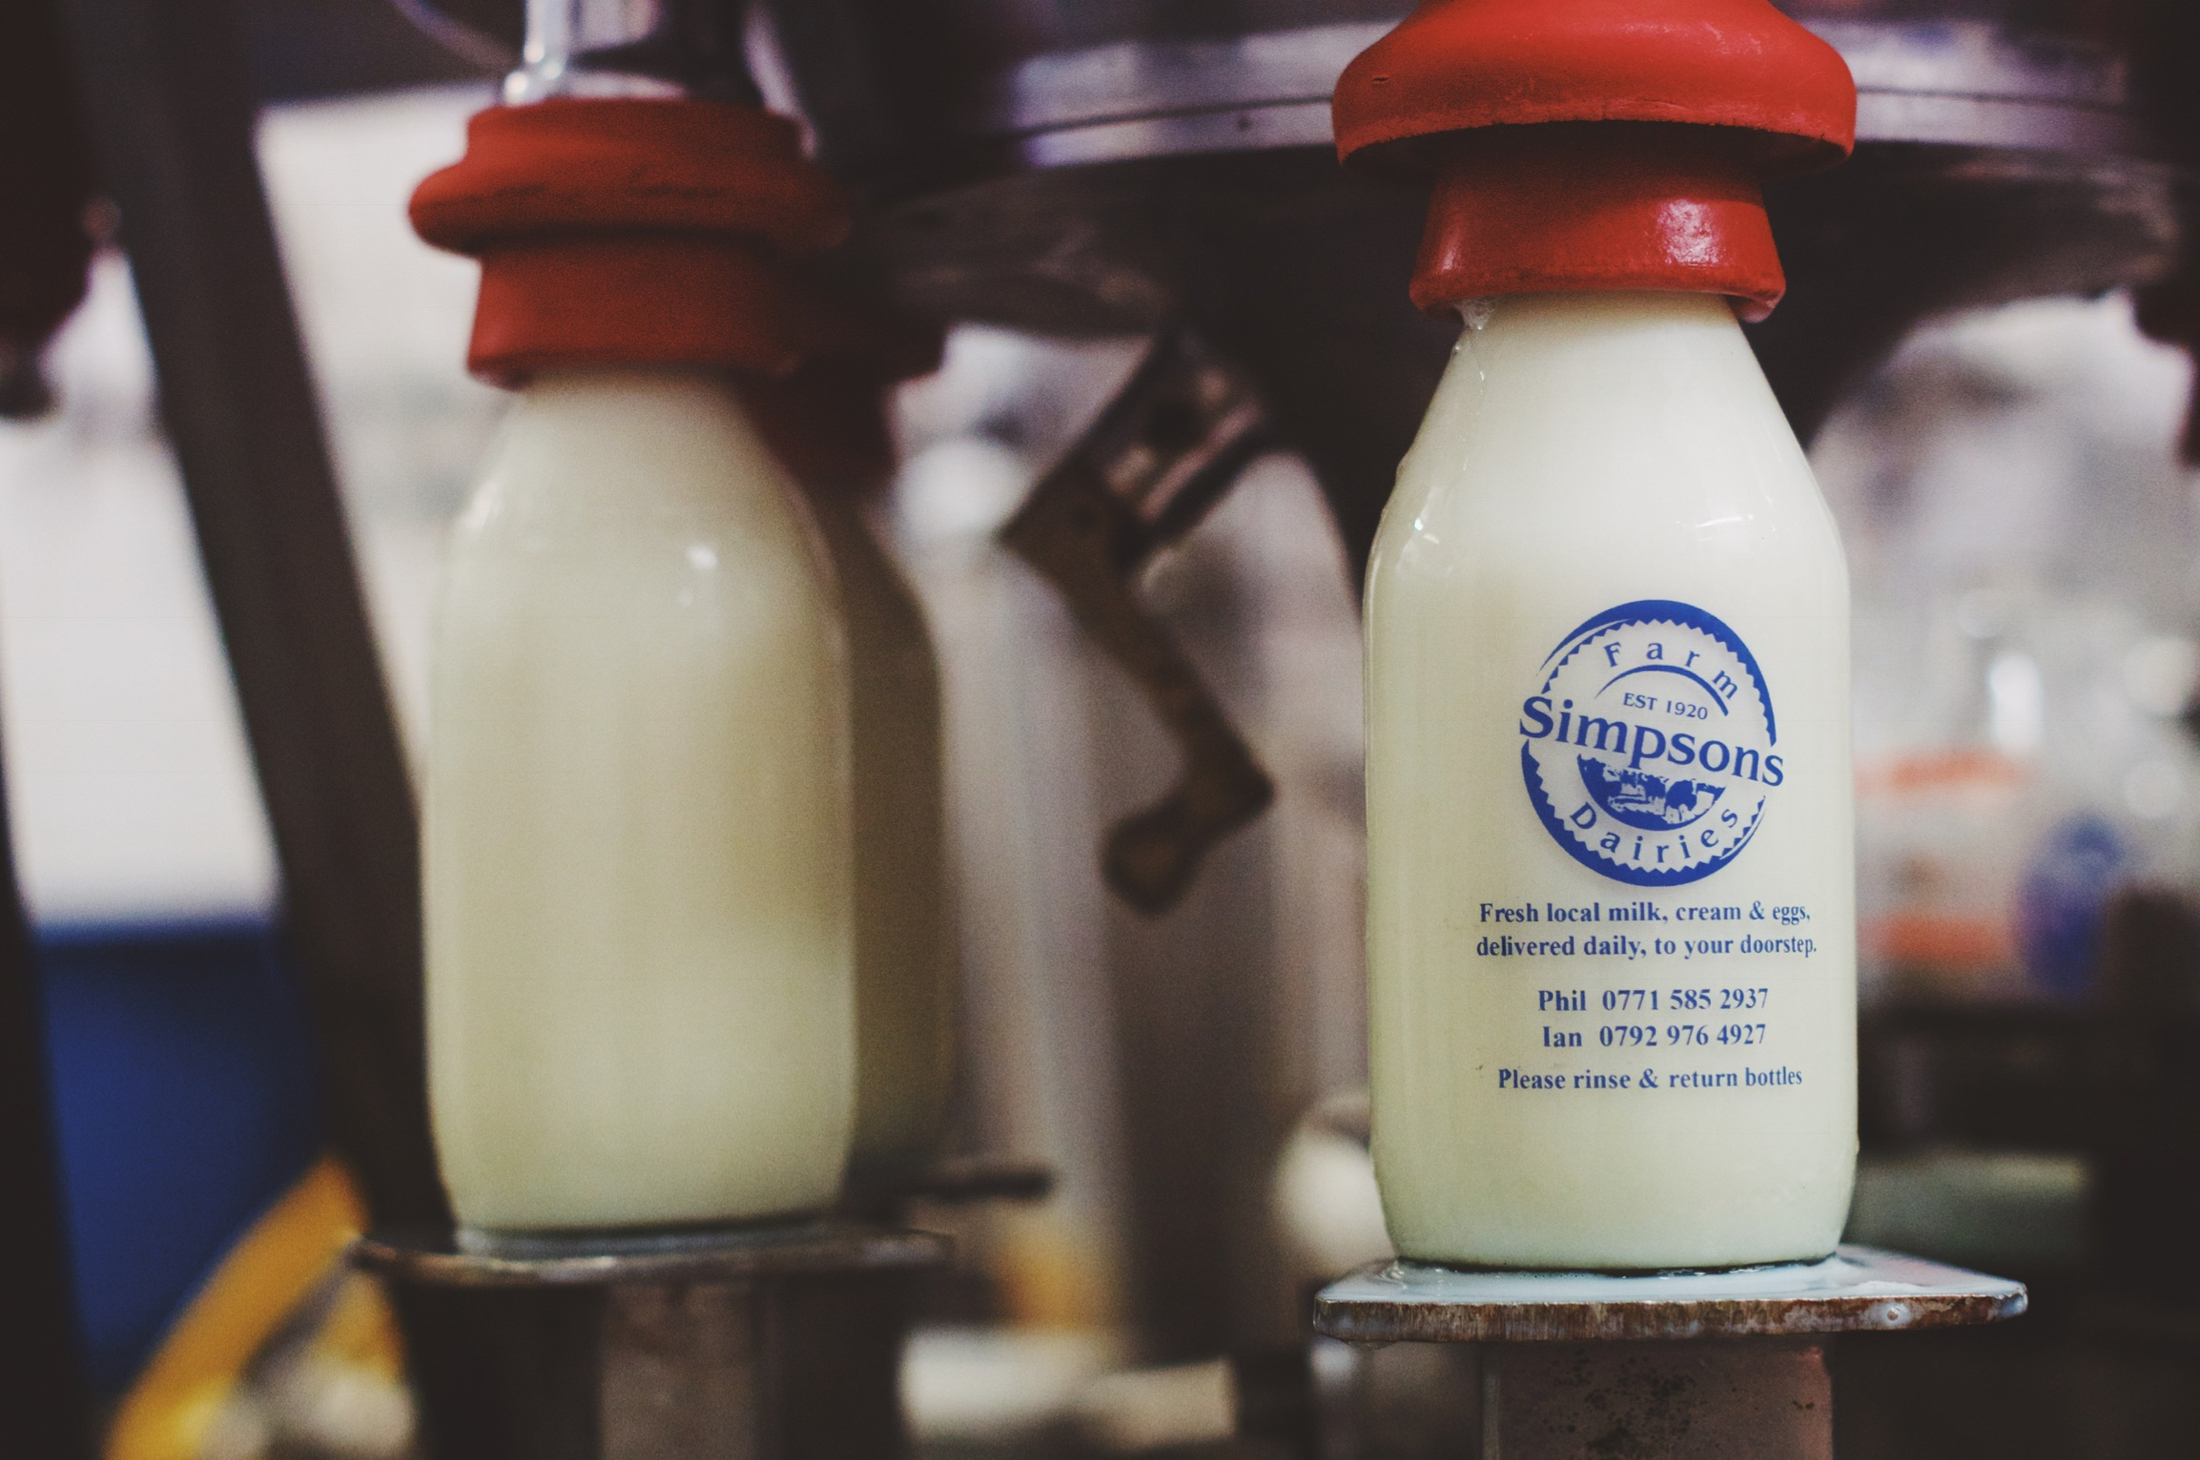 Milk production into glass pint bottles by Lancashire dairy farm, Simpsons Farm Dairies